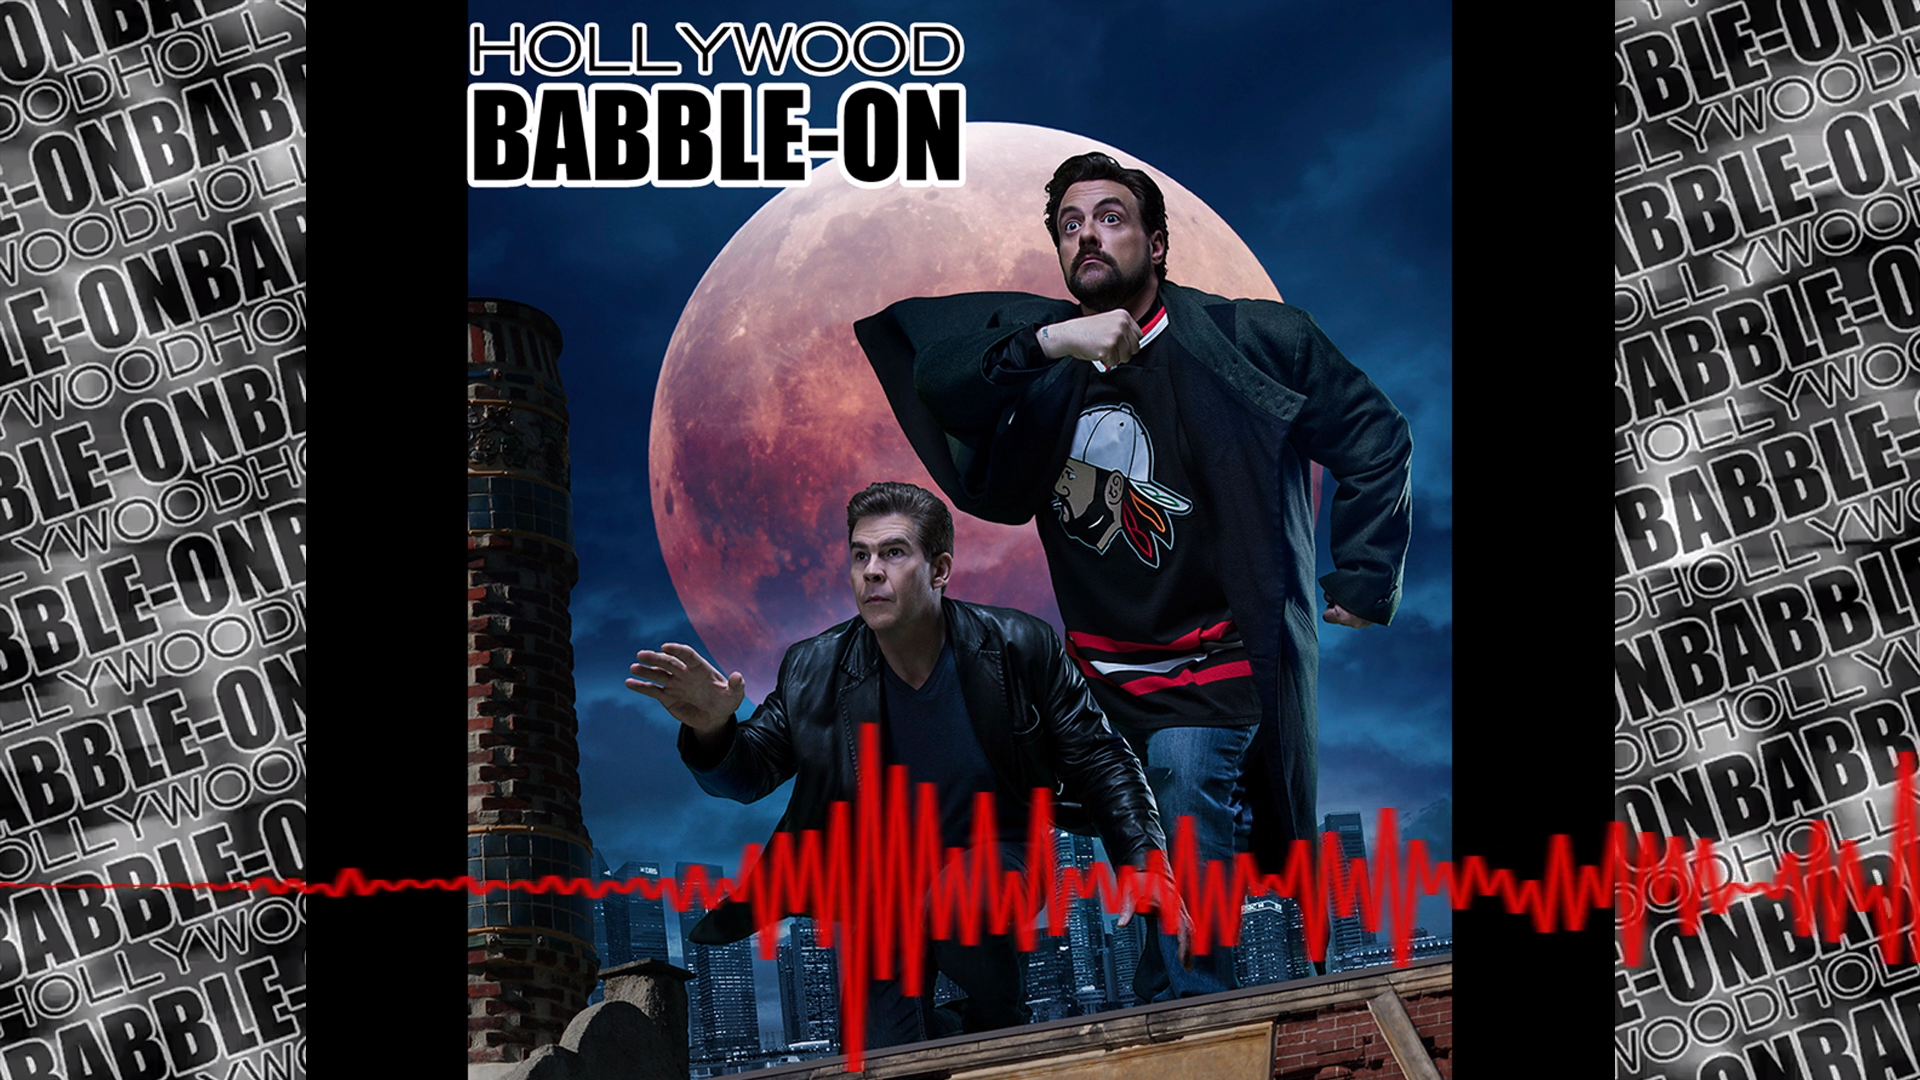 HOLLYWOOD BABBLE-ON #348: 5/9/19 - DUBLIN ENHANCED AUDIO